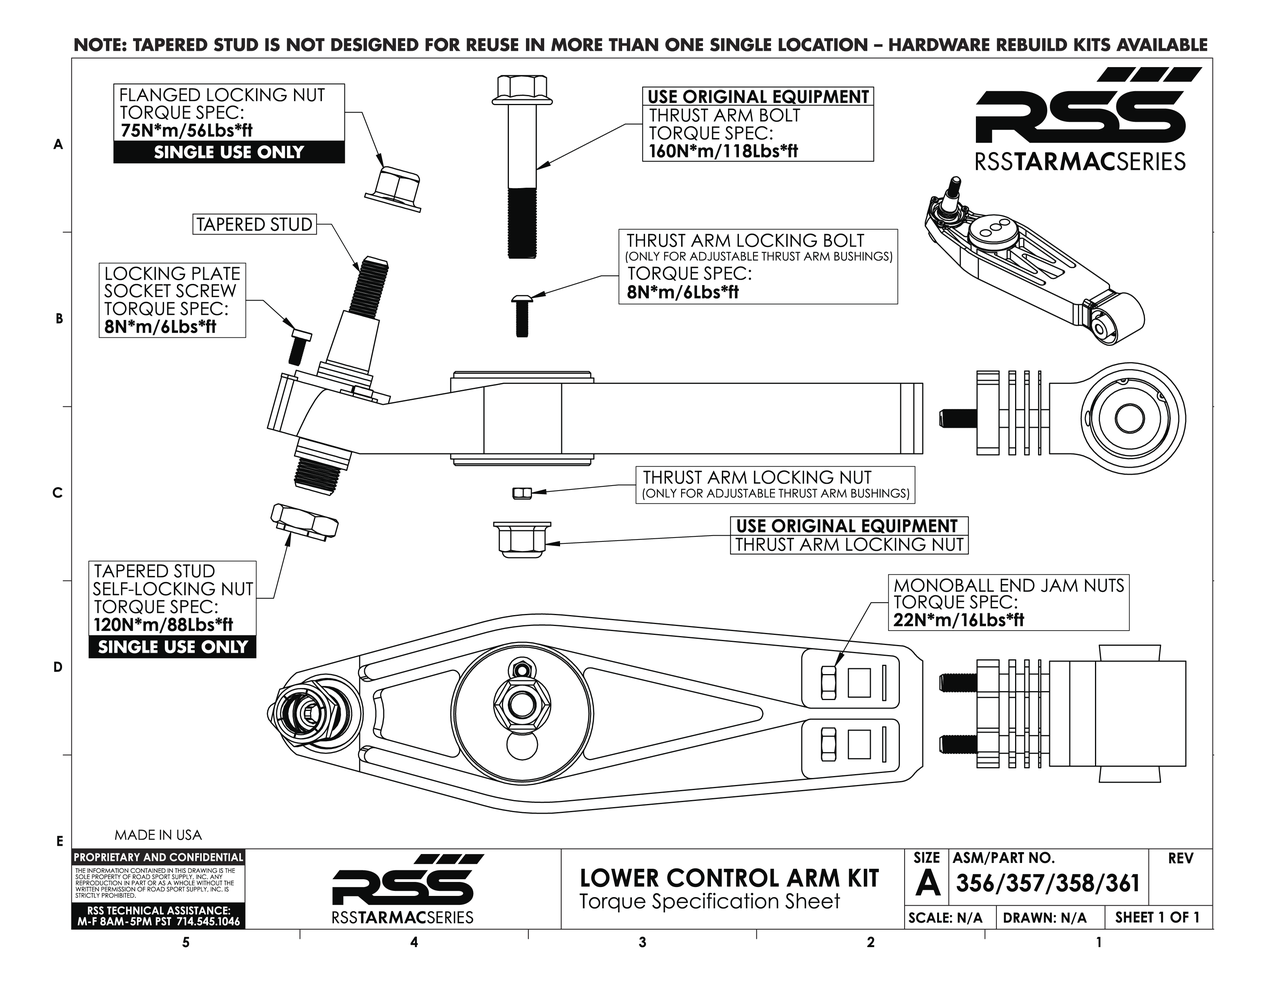 """#374 RSS XL TARMAC SERIES XL 2-PIECE COMPLETE LOWER CONTROL ARM KIT - Rear Axle (Pair of 2). Fits Rear axle (986, 996, 997, 987, 981/982/718). Includes: Adjustable/Non-Hydraulic Replacement Thrust Arm Bushings, 1mm/2mm/3mm/7mm Shims, Spherical Monoball Ends.** Note: 981 and 991 Models may require additional Front Litronic or Torque Vector Sensor Brackets.  RSS Tarmac Series Motorsport Lower Control Arms are specifically engineered for use on lowered vehicles that have reduced travel struts/dampers If you need assistance in identifying your suspension type please contact us. For specific fitment information refer to the """"Chassis Fitment Guide and Lower Control Arm Fitment Notes"""" (See Images Below).  The RSS Tarmac Series – Motorsports Control Arms are designed for the Porsche driver who demands the absolute maximum in precision handling, feedback and control from their chassis. This system has been specially engineered to provide unmatched performance, quality, strength and serviceability. RSS Tarmac Series Control Arms address the performance related shortcomings of the OEM rubber mounted suspension components which were designed to reduce road noise and vibration for everyday street use. The use of rubber injected moldings in mounting components such as the control arms, thrust arms, upper links and toe arms is a compromise in regards to maximum suspension performance. The soft rubber deflects under suspension load which in turn causes unwanted movement (deflection) between the suspension and chassis. Data also shows that temporary changes in spring rates can occur as well. These movements and changes result in unnecessary corrections and inputs from the driver.  FEATURES & BENEFITS • Completely Serviceable: For the extreme, repetitive track day enthusiast or racer, our high strength steel alloy spherical bearings (with a friction reducing, longevity increasing Teflon liner) can be replaced unlike the motorsports arms, in which case a new set of arms will need to b"""